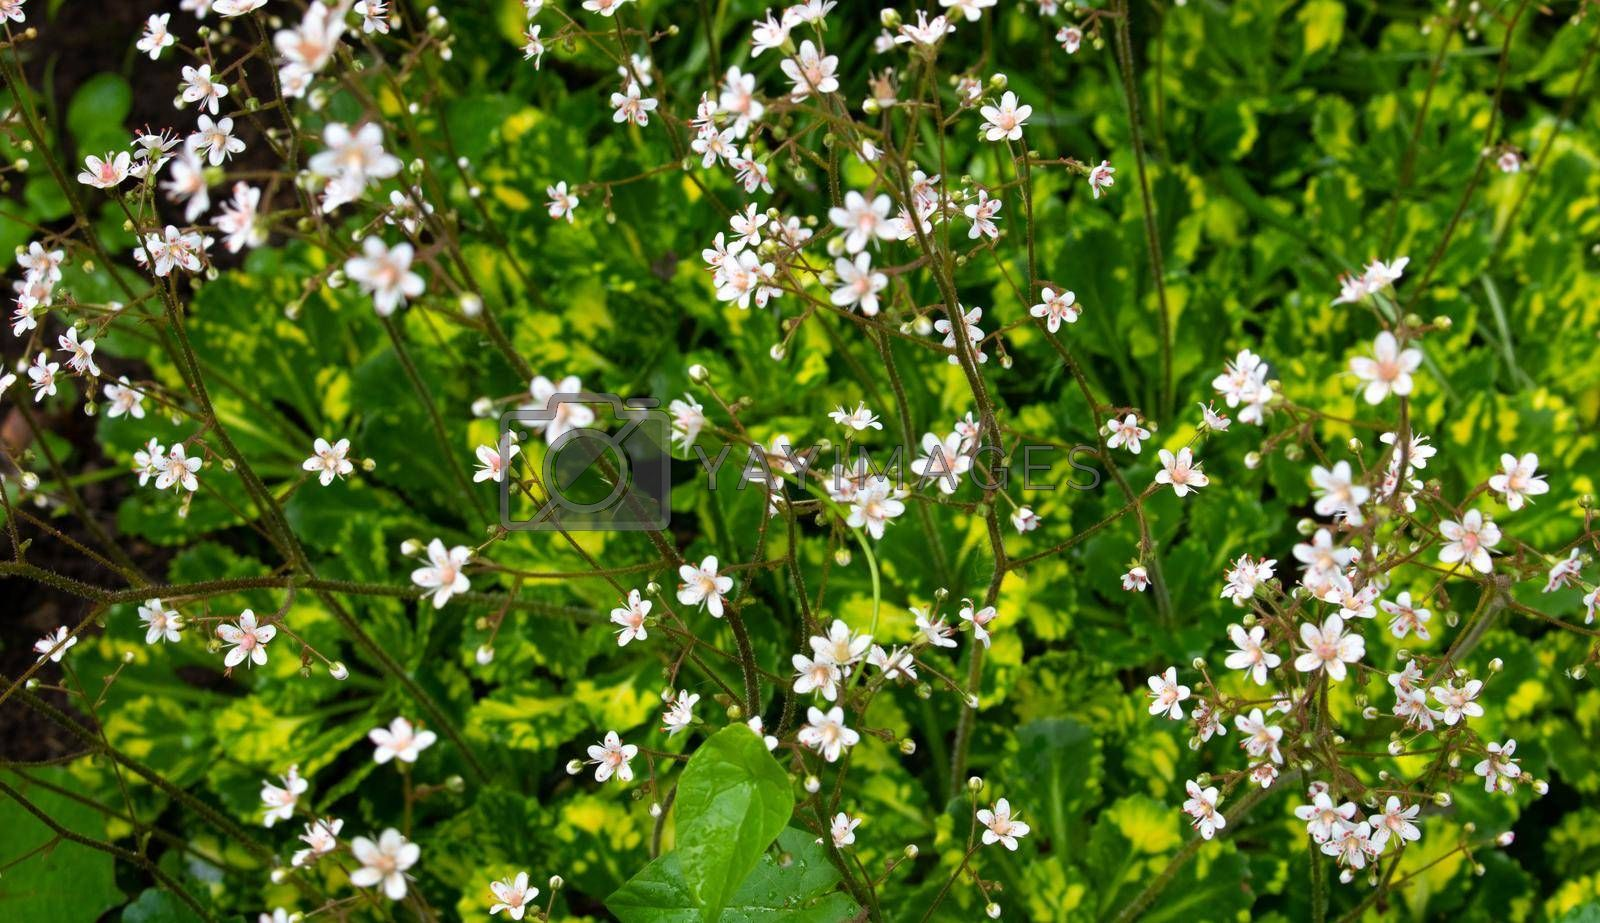 Small white flowers in field on green grass background. Soft focus.